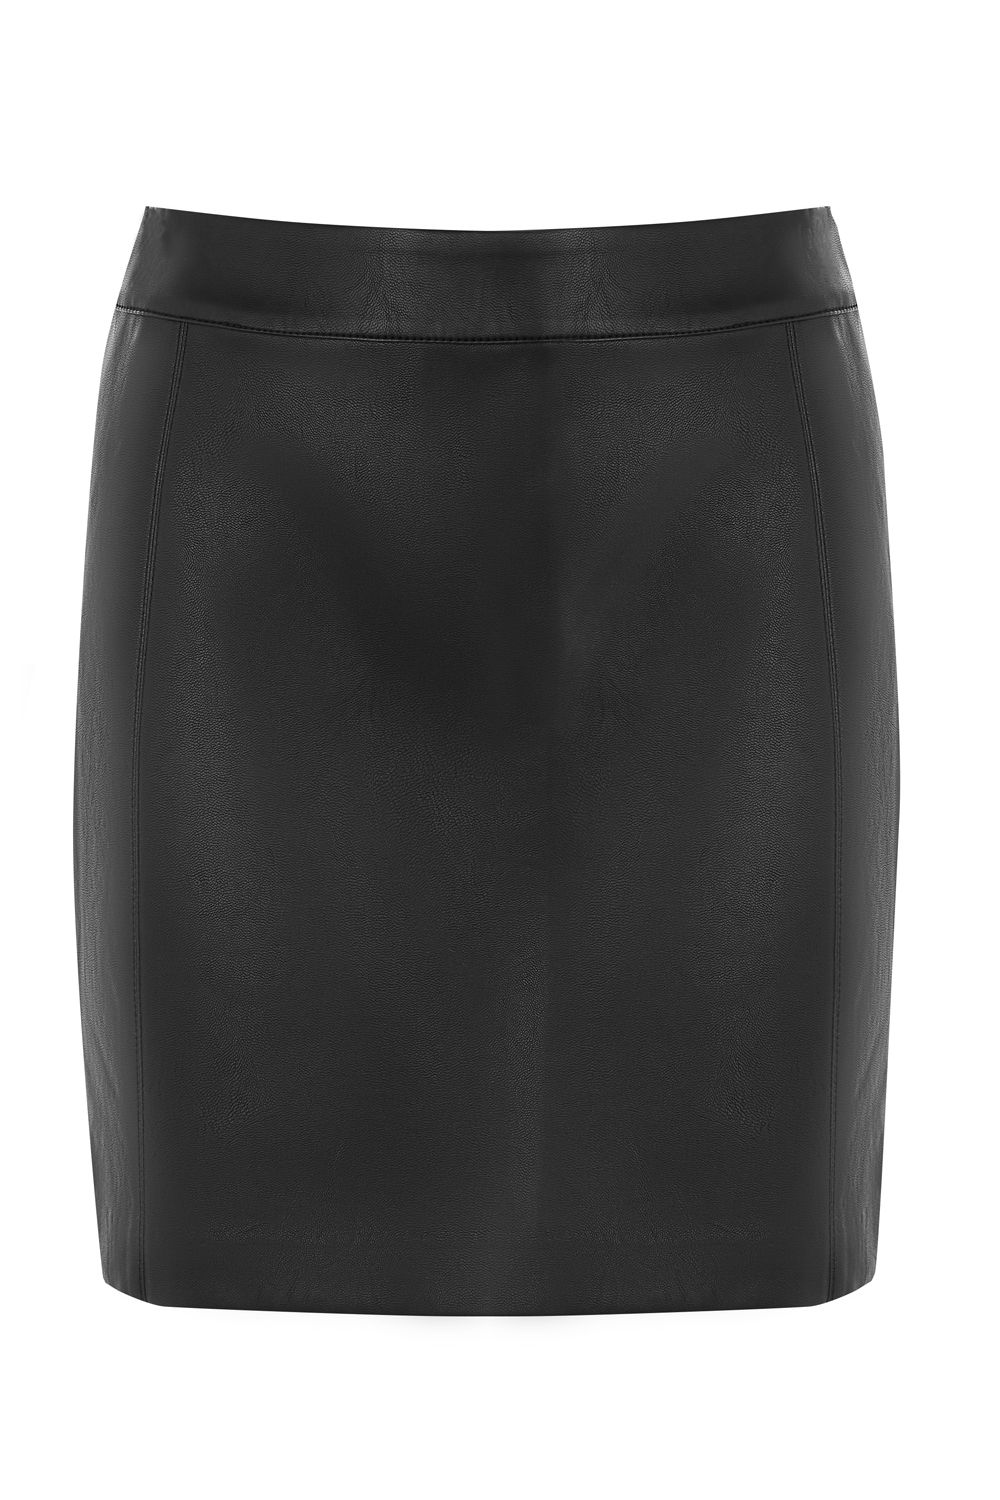 Oasis FAUX LEATHER SEAMED MINI SKIRT, Black